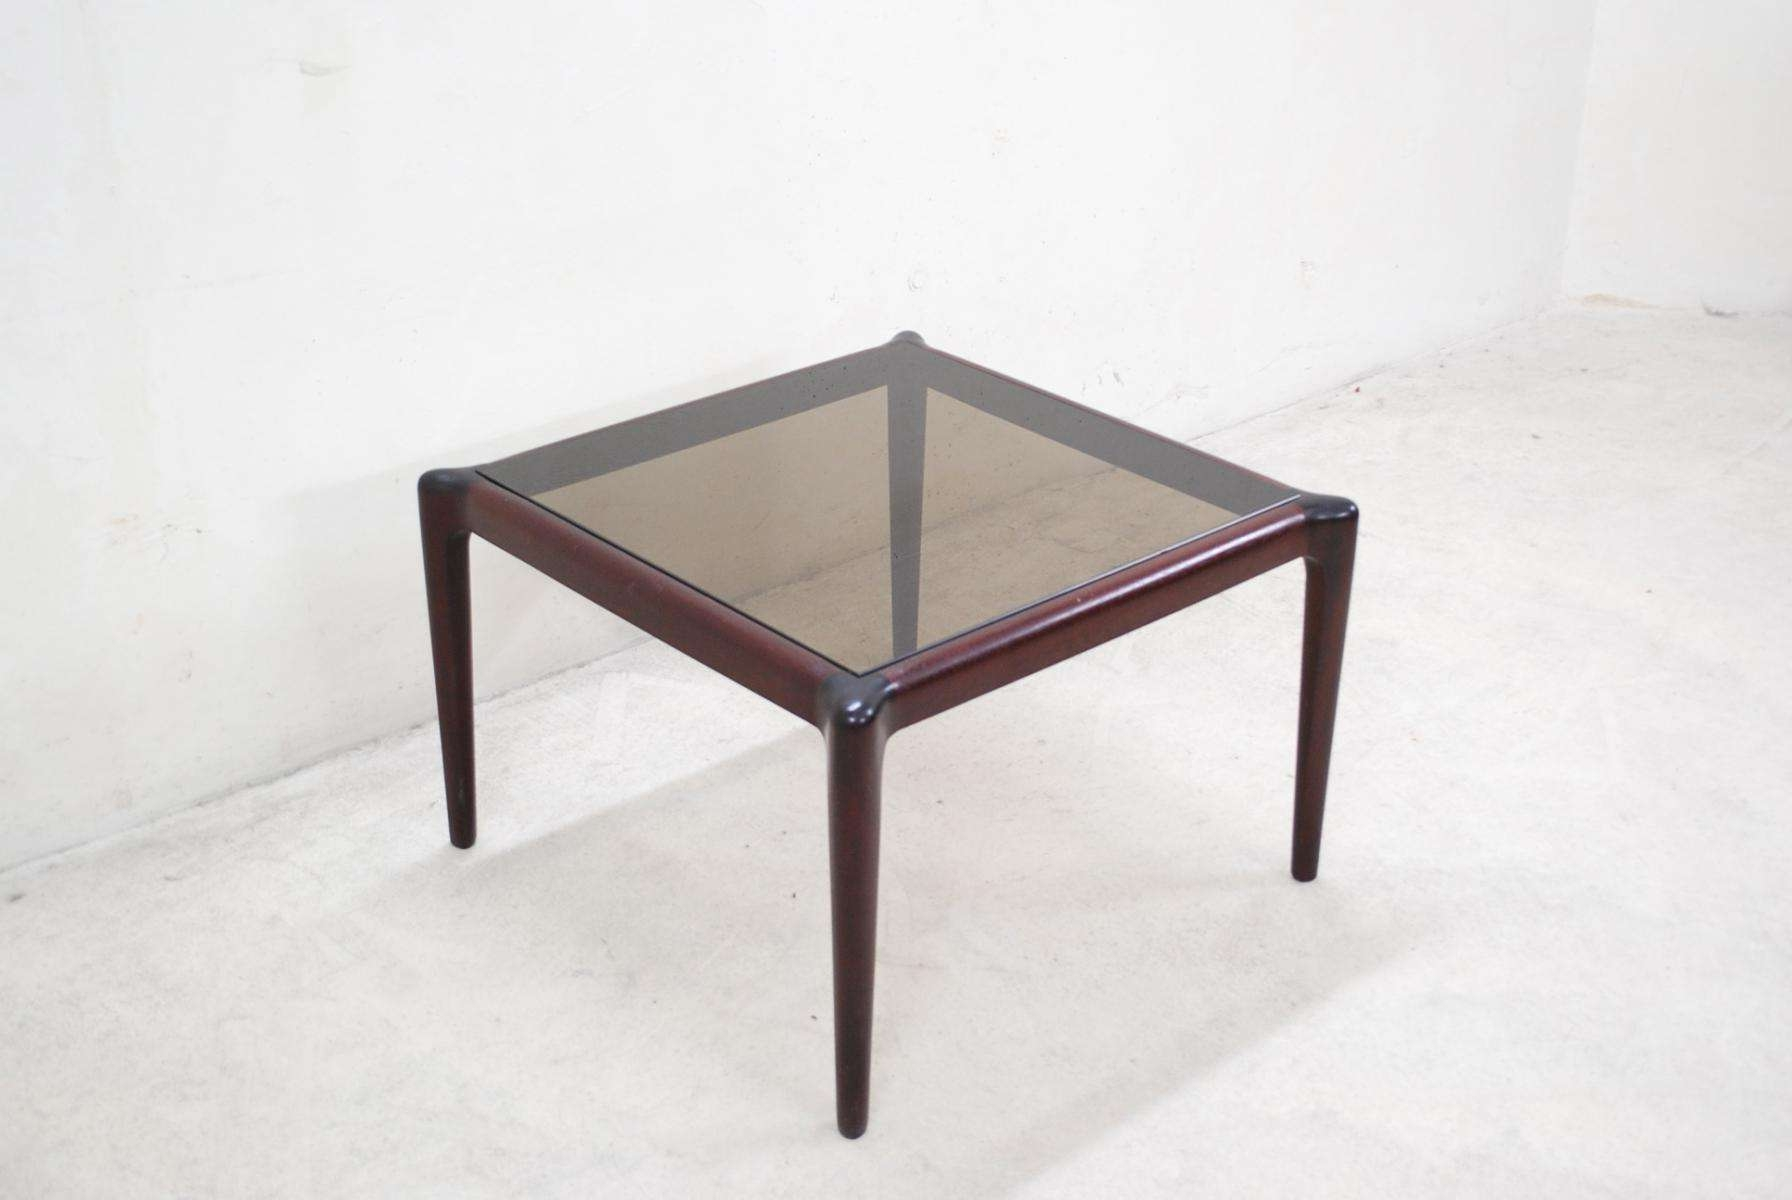 Vintage Mahogony & Smoked Glass Coffee Table For Sale At Pamono Intended For Recent Retro Smoked Glass Coffee Tables (Gallery 1 of 20)